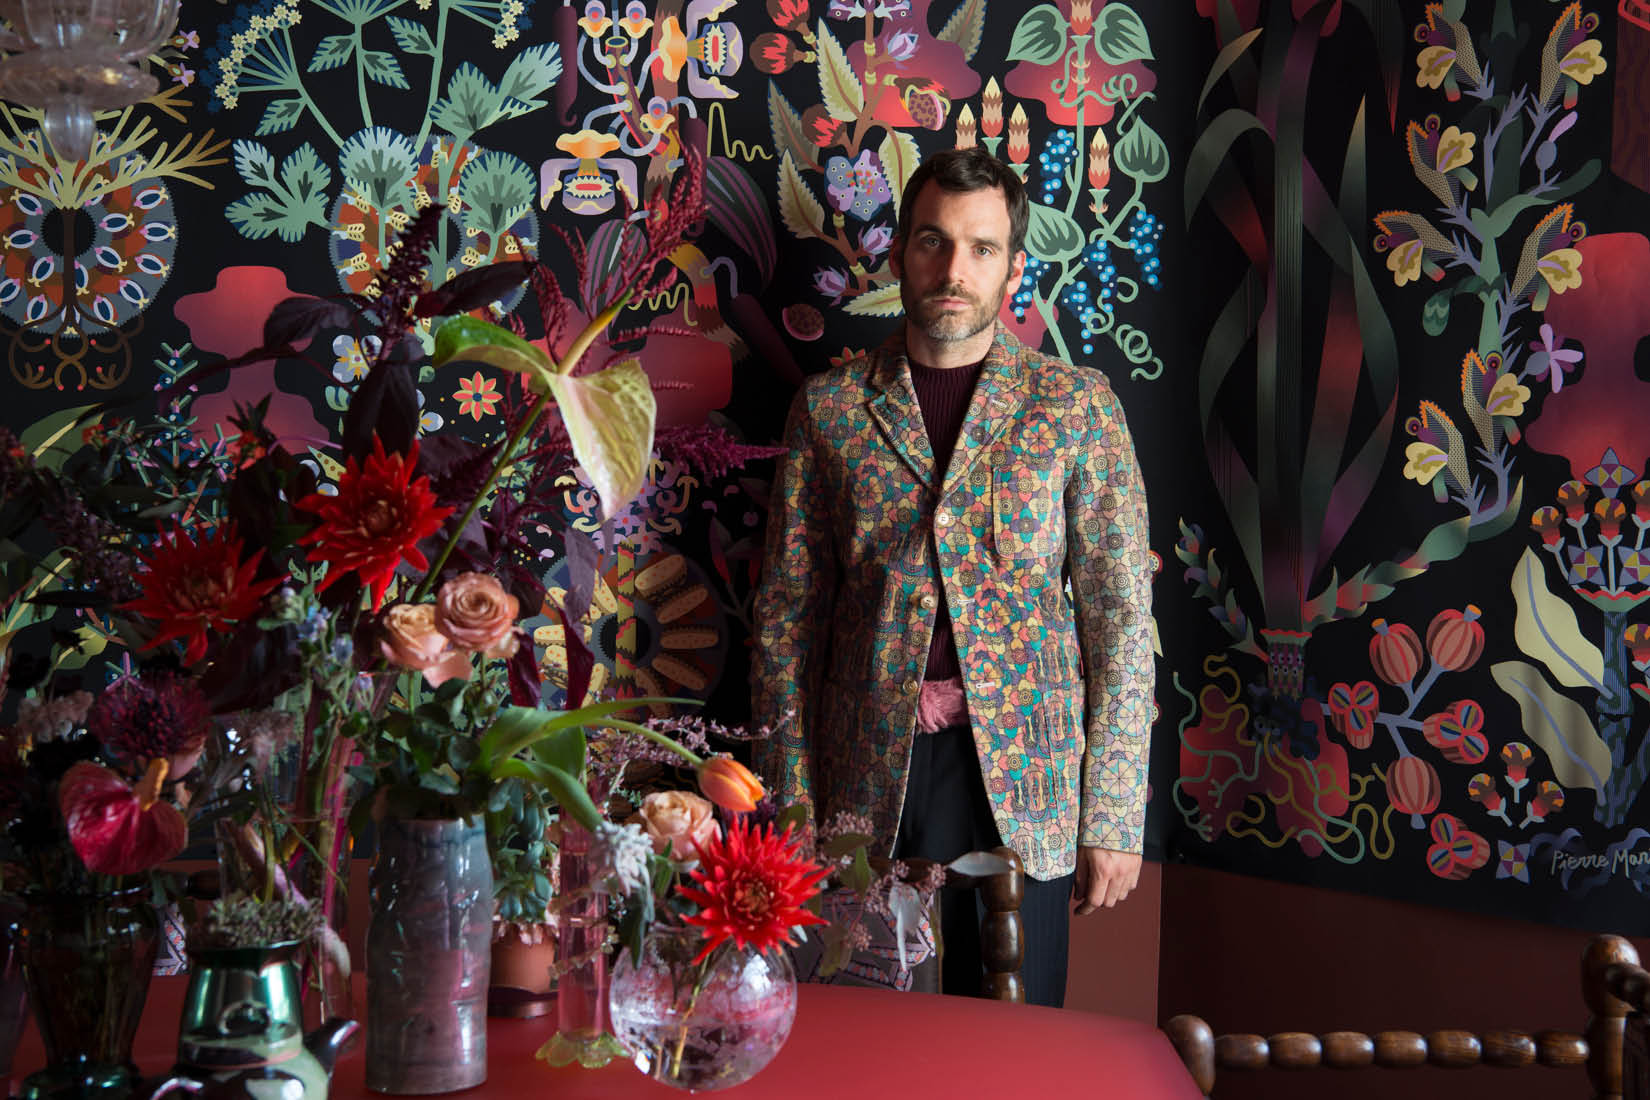 Pierre Marie is standing in front of his Ras El Hanout tapestry behind a table with flowers in vases.